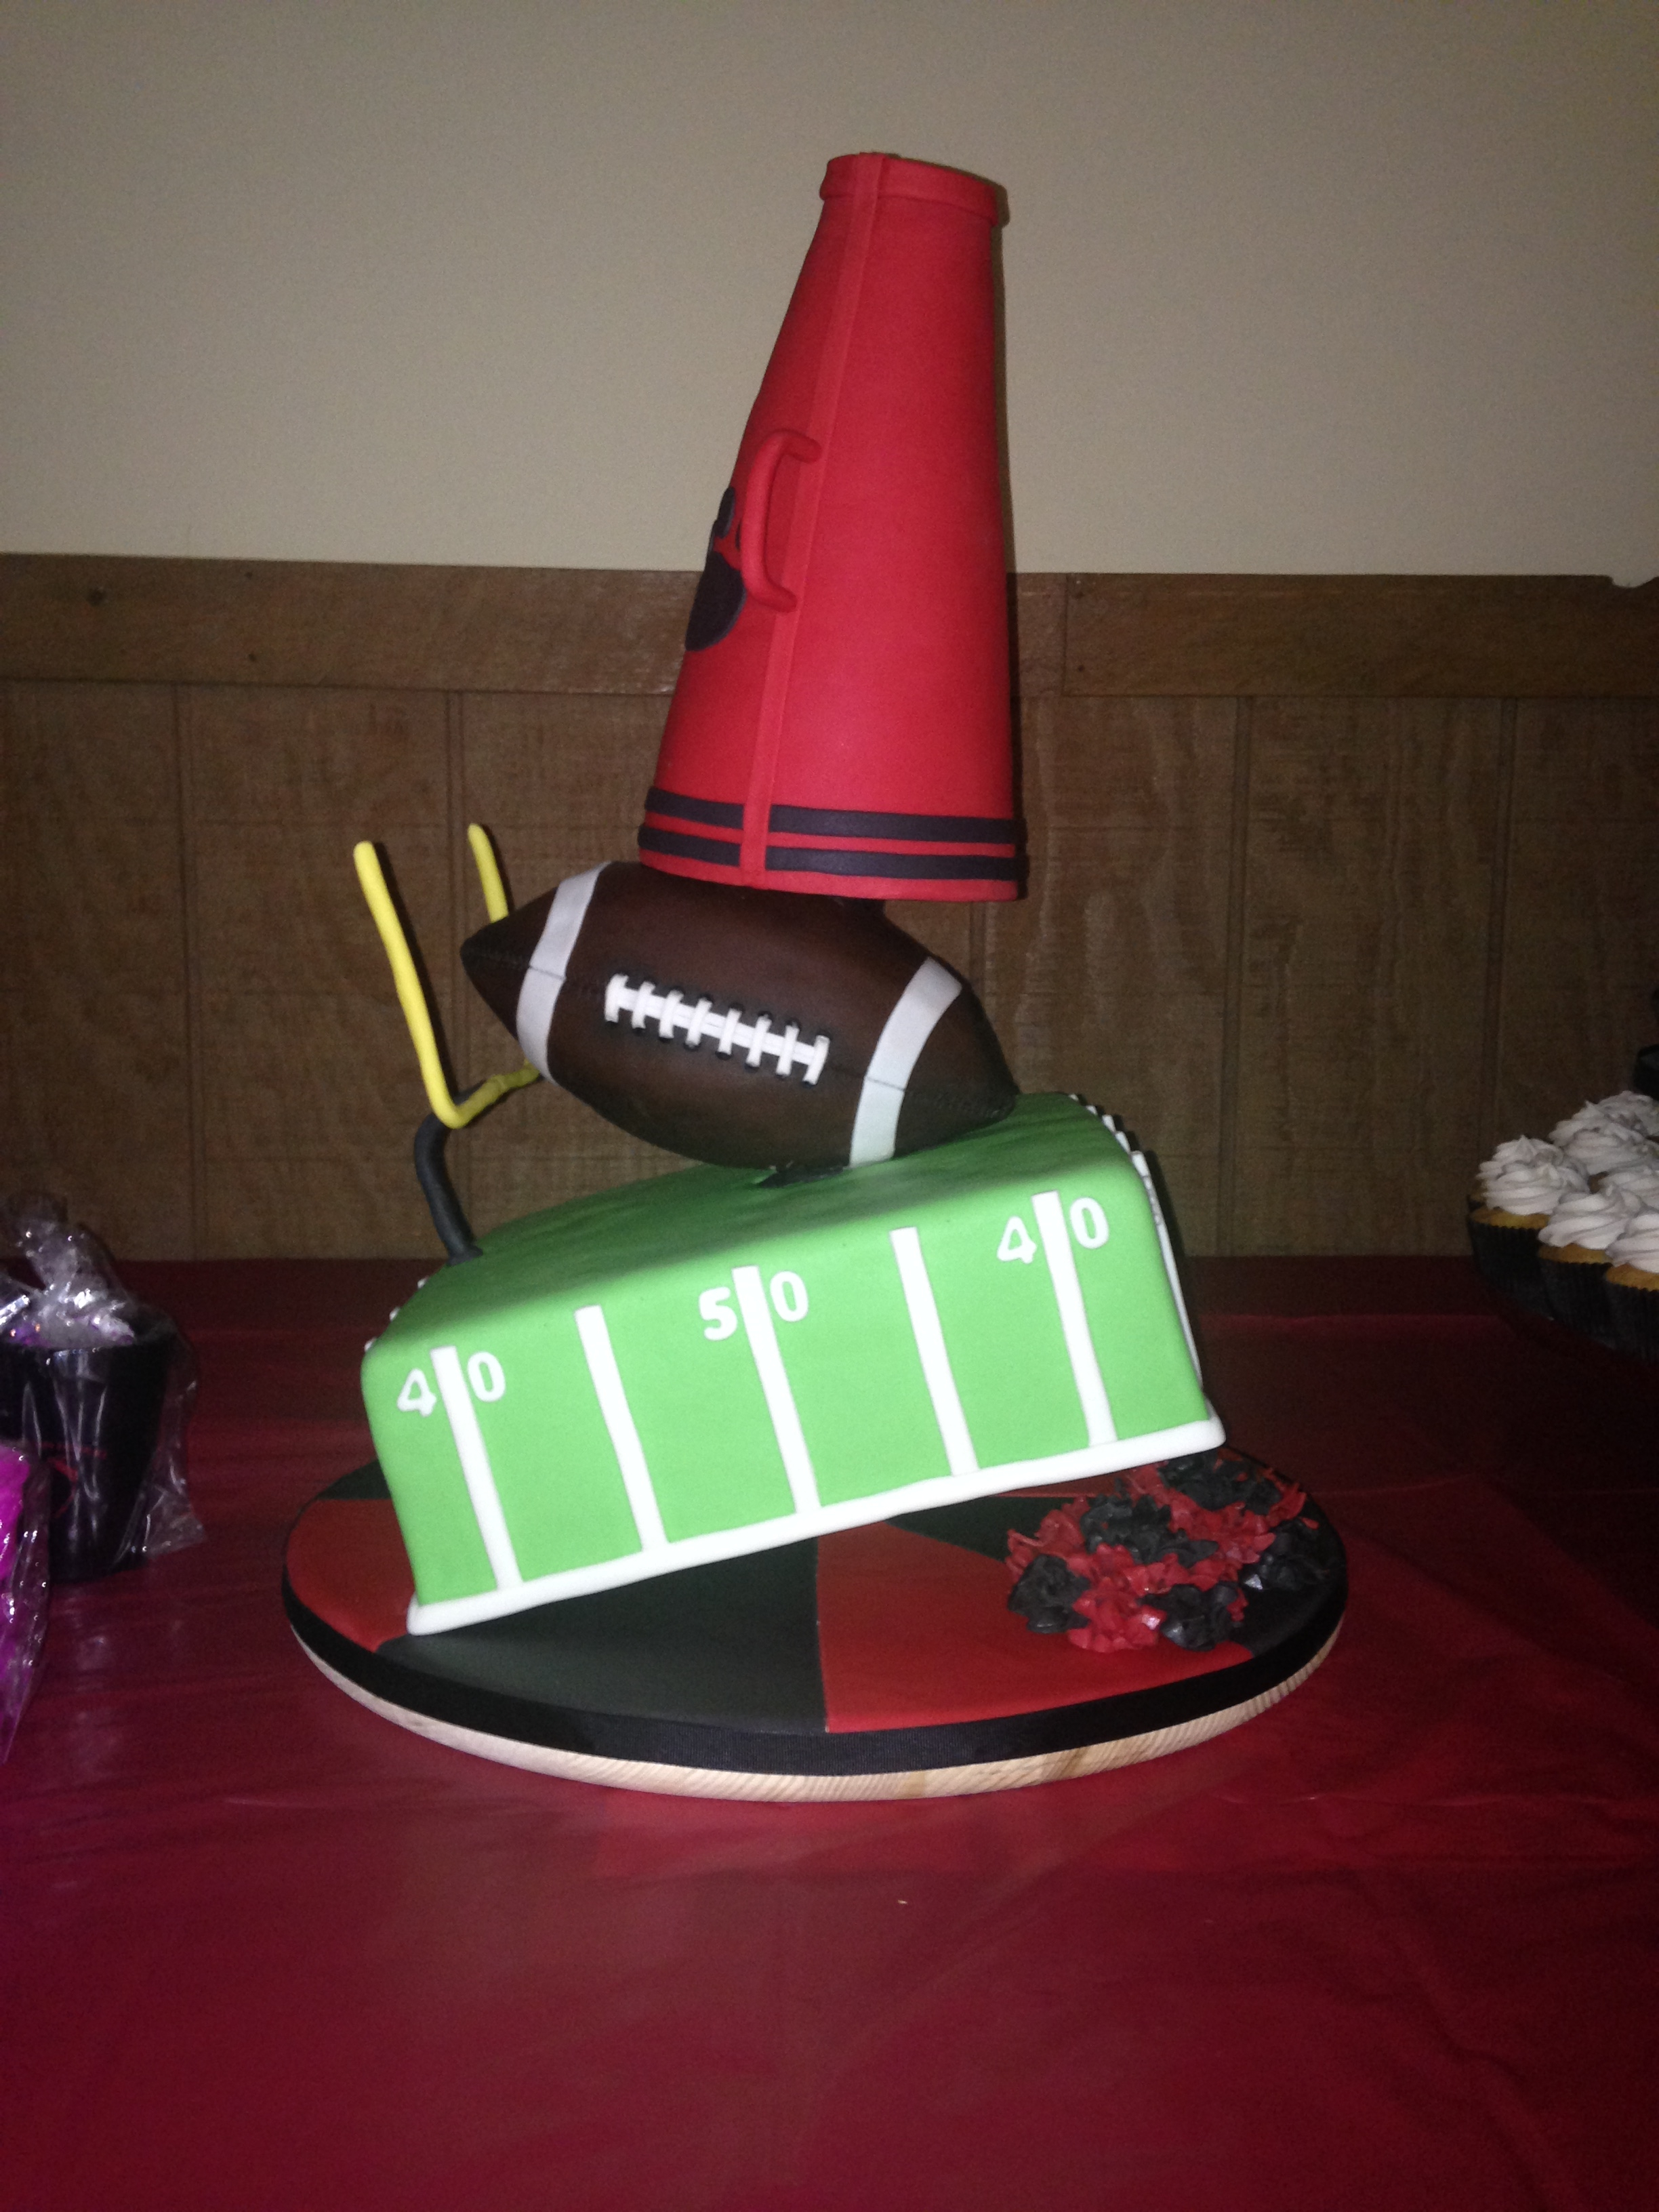 Football Cheer Topsy Turvy Cake  Football field themed bottom tier covered in mmf, 3D football center tier covered in modeling chocolate, megaphone top tier covered in mmf...